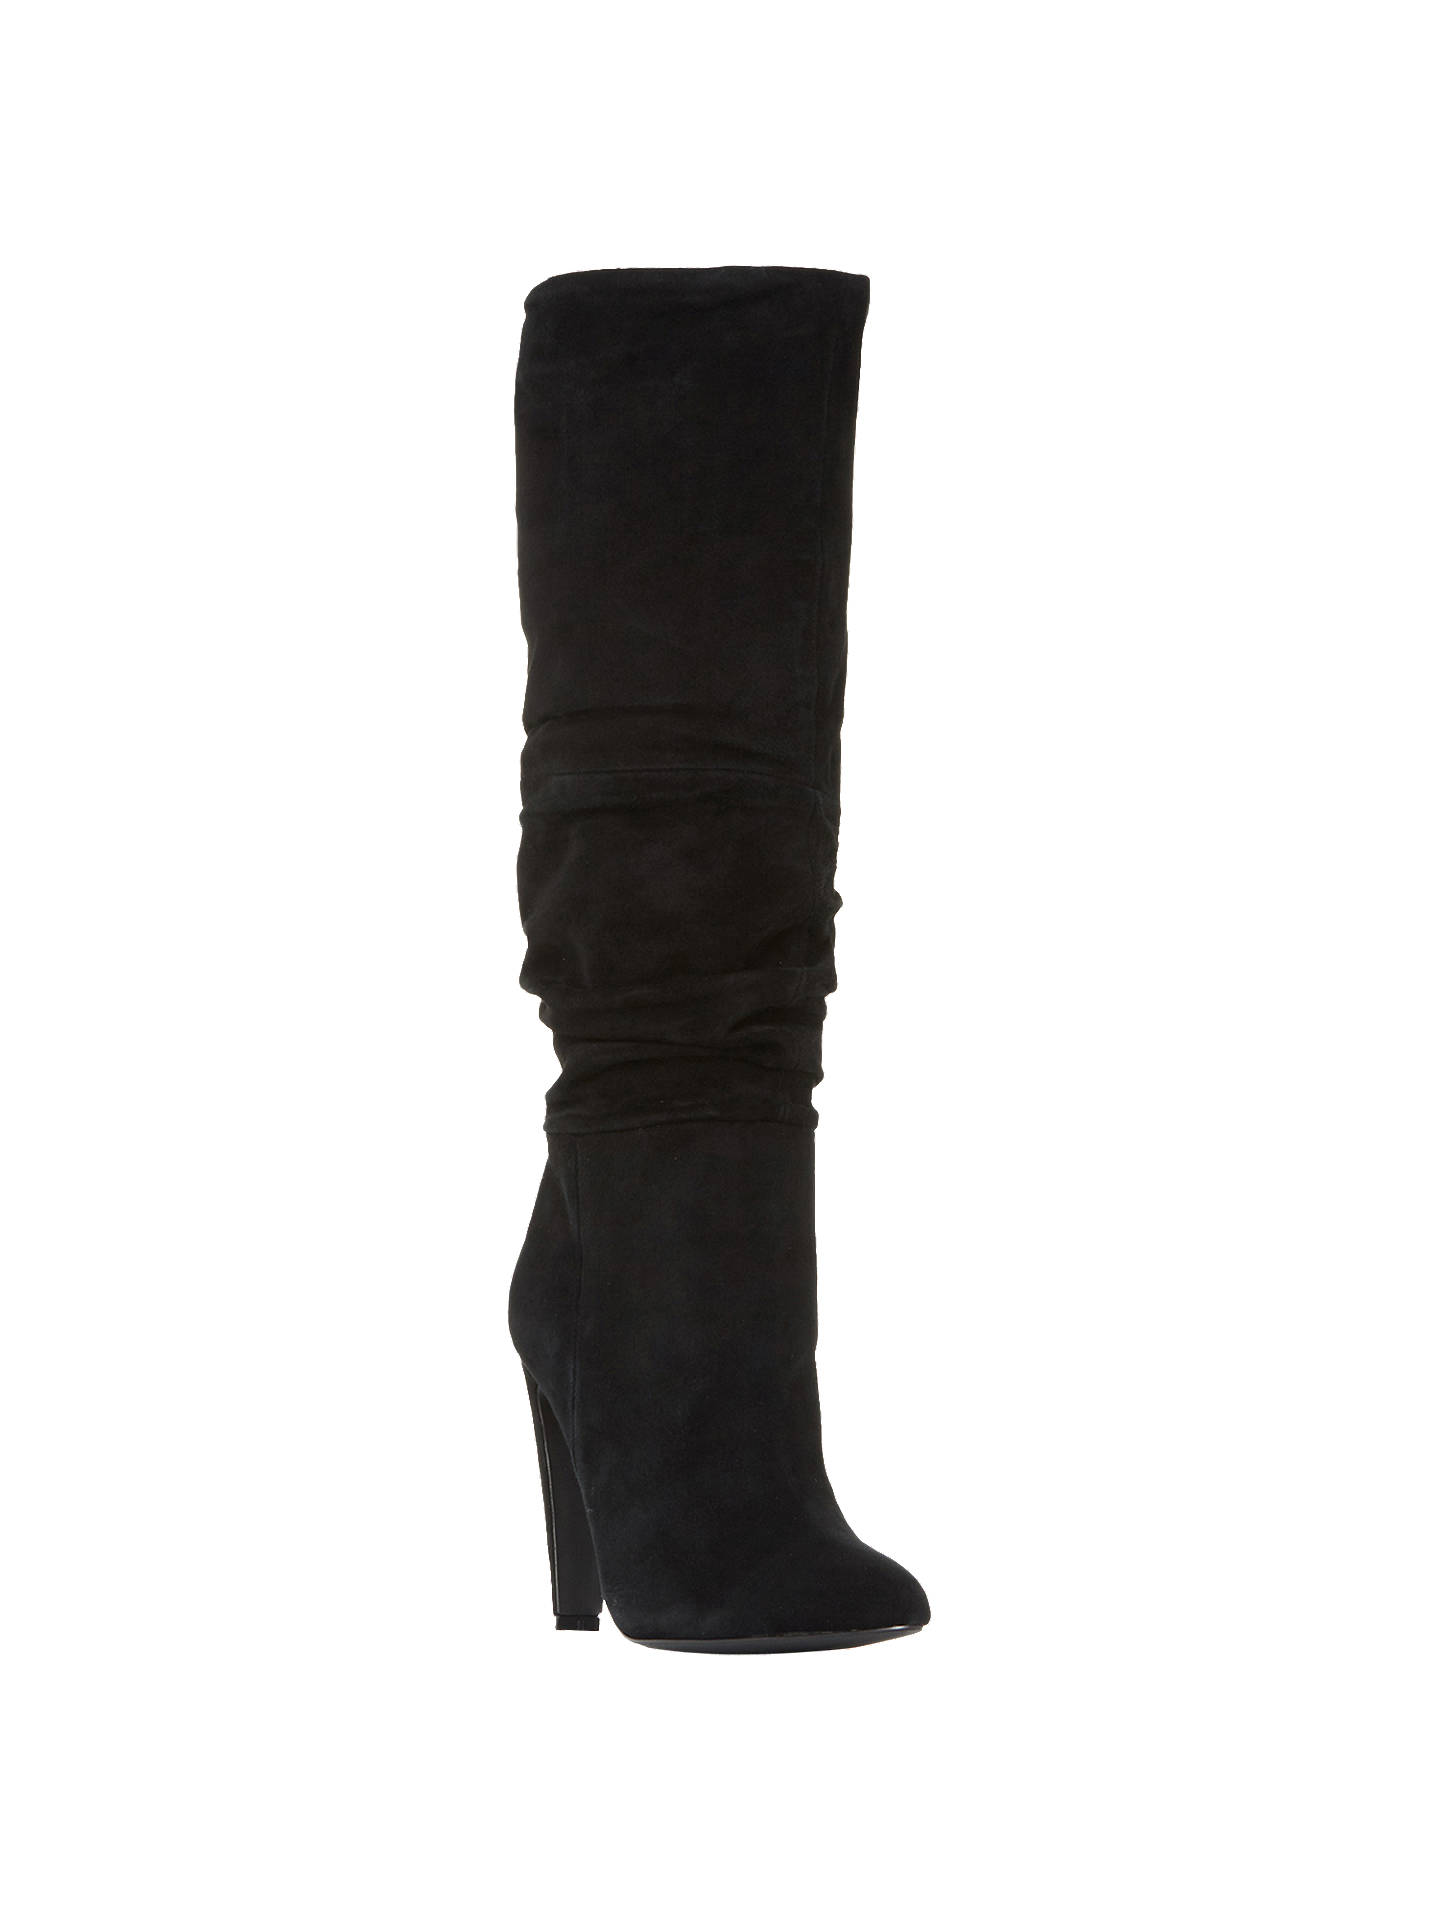 671e782cd08 Buy Steve Madden Carrie Ruched Knee High Boots